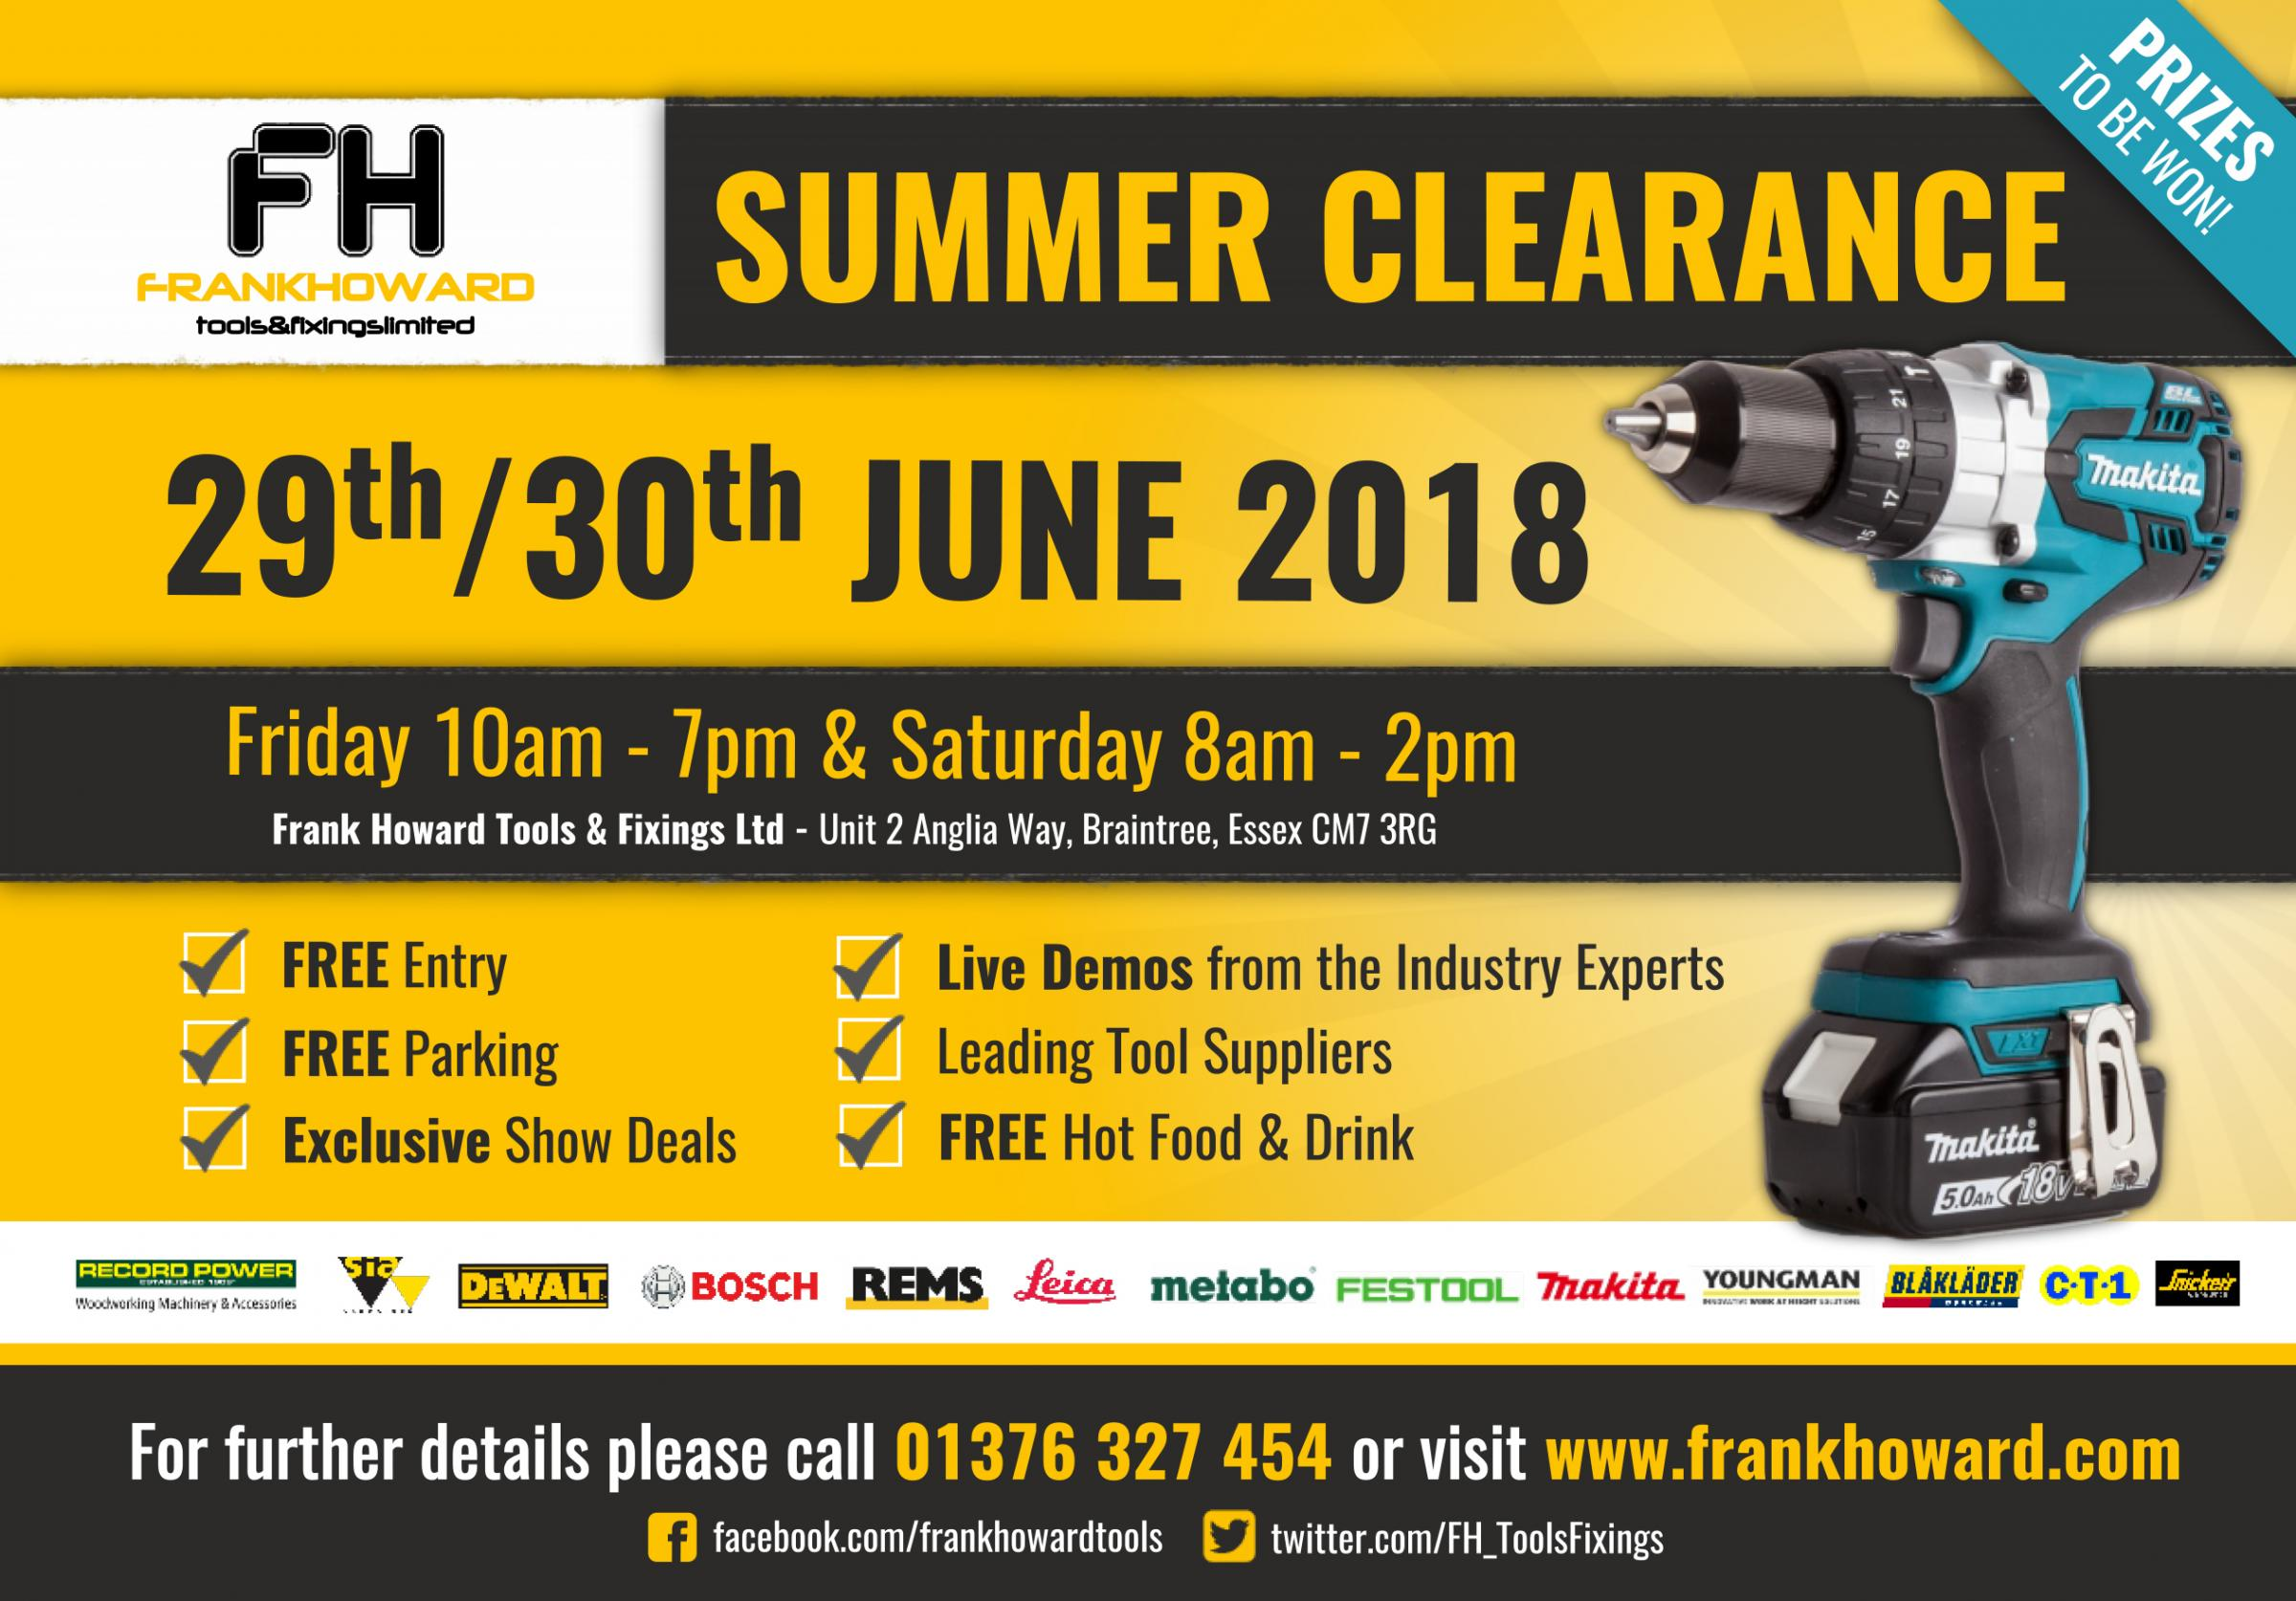 Frank Howard Tools Summer Clearance 2018